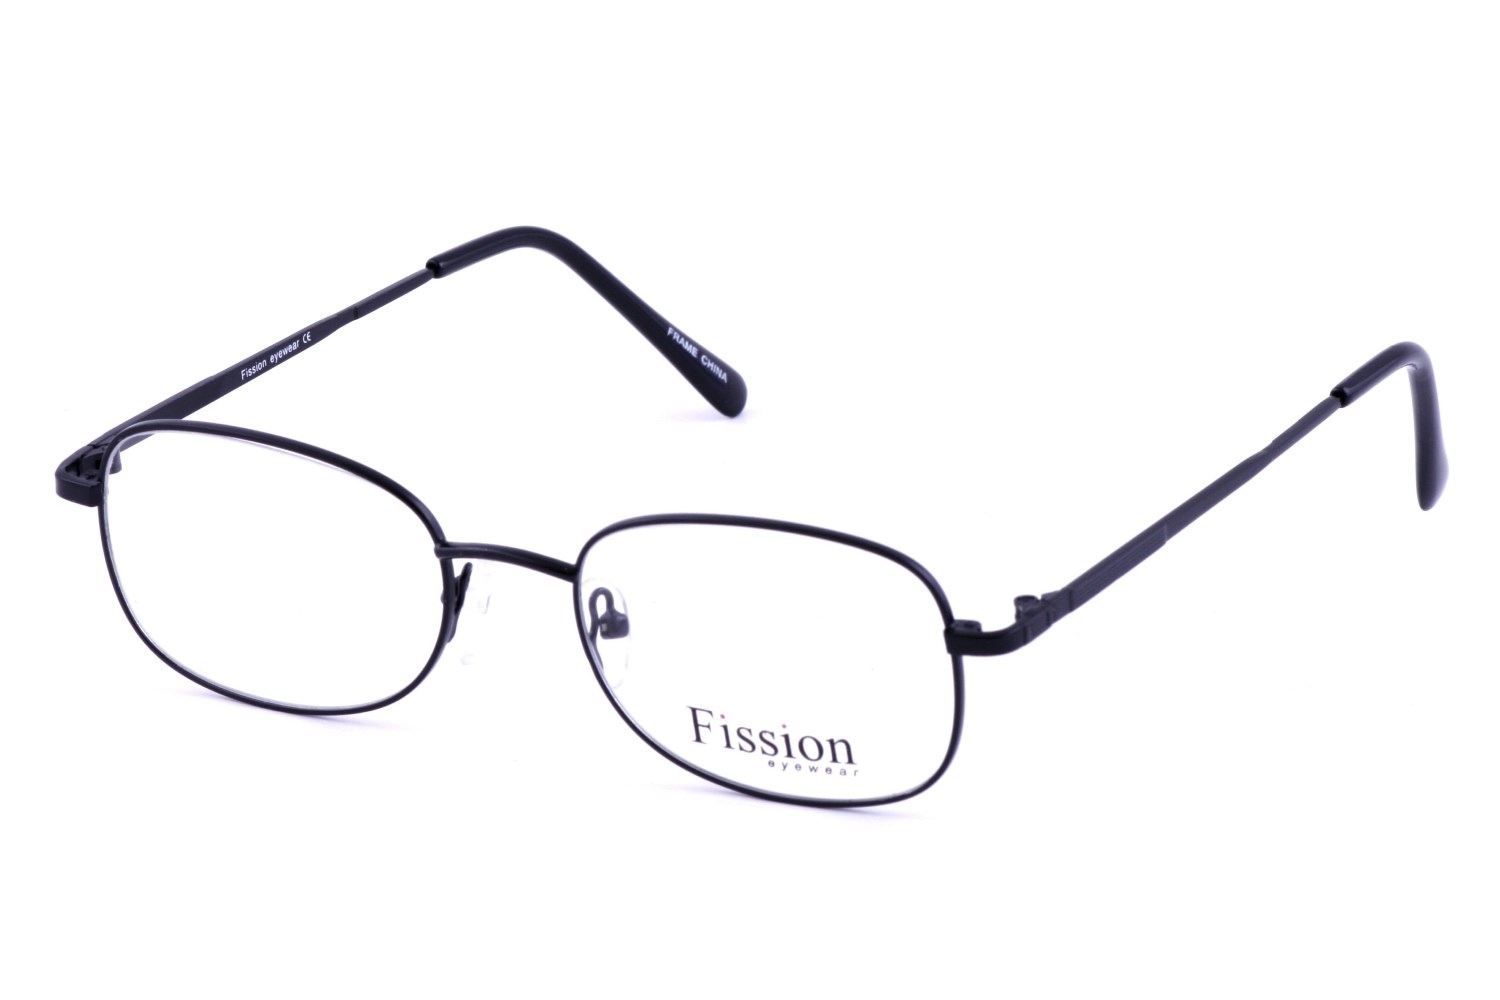 Fission 018 Prescription Eyeglasses Frames